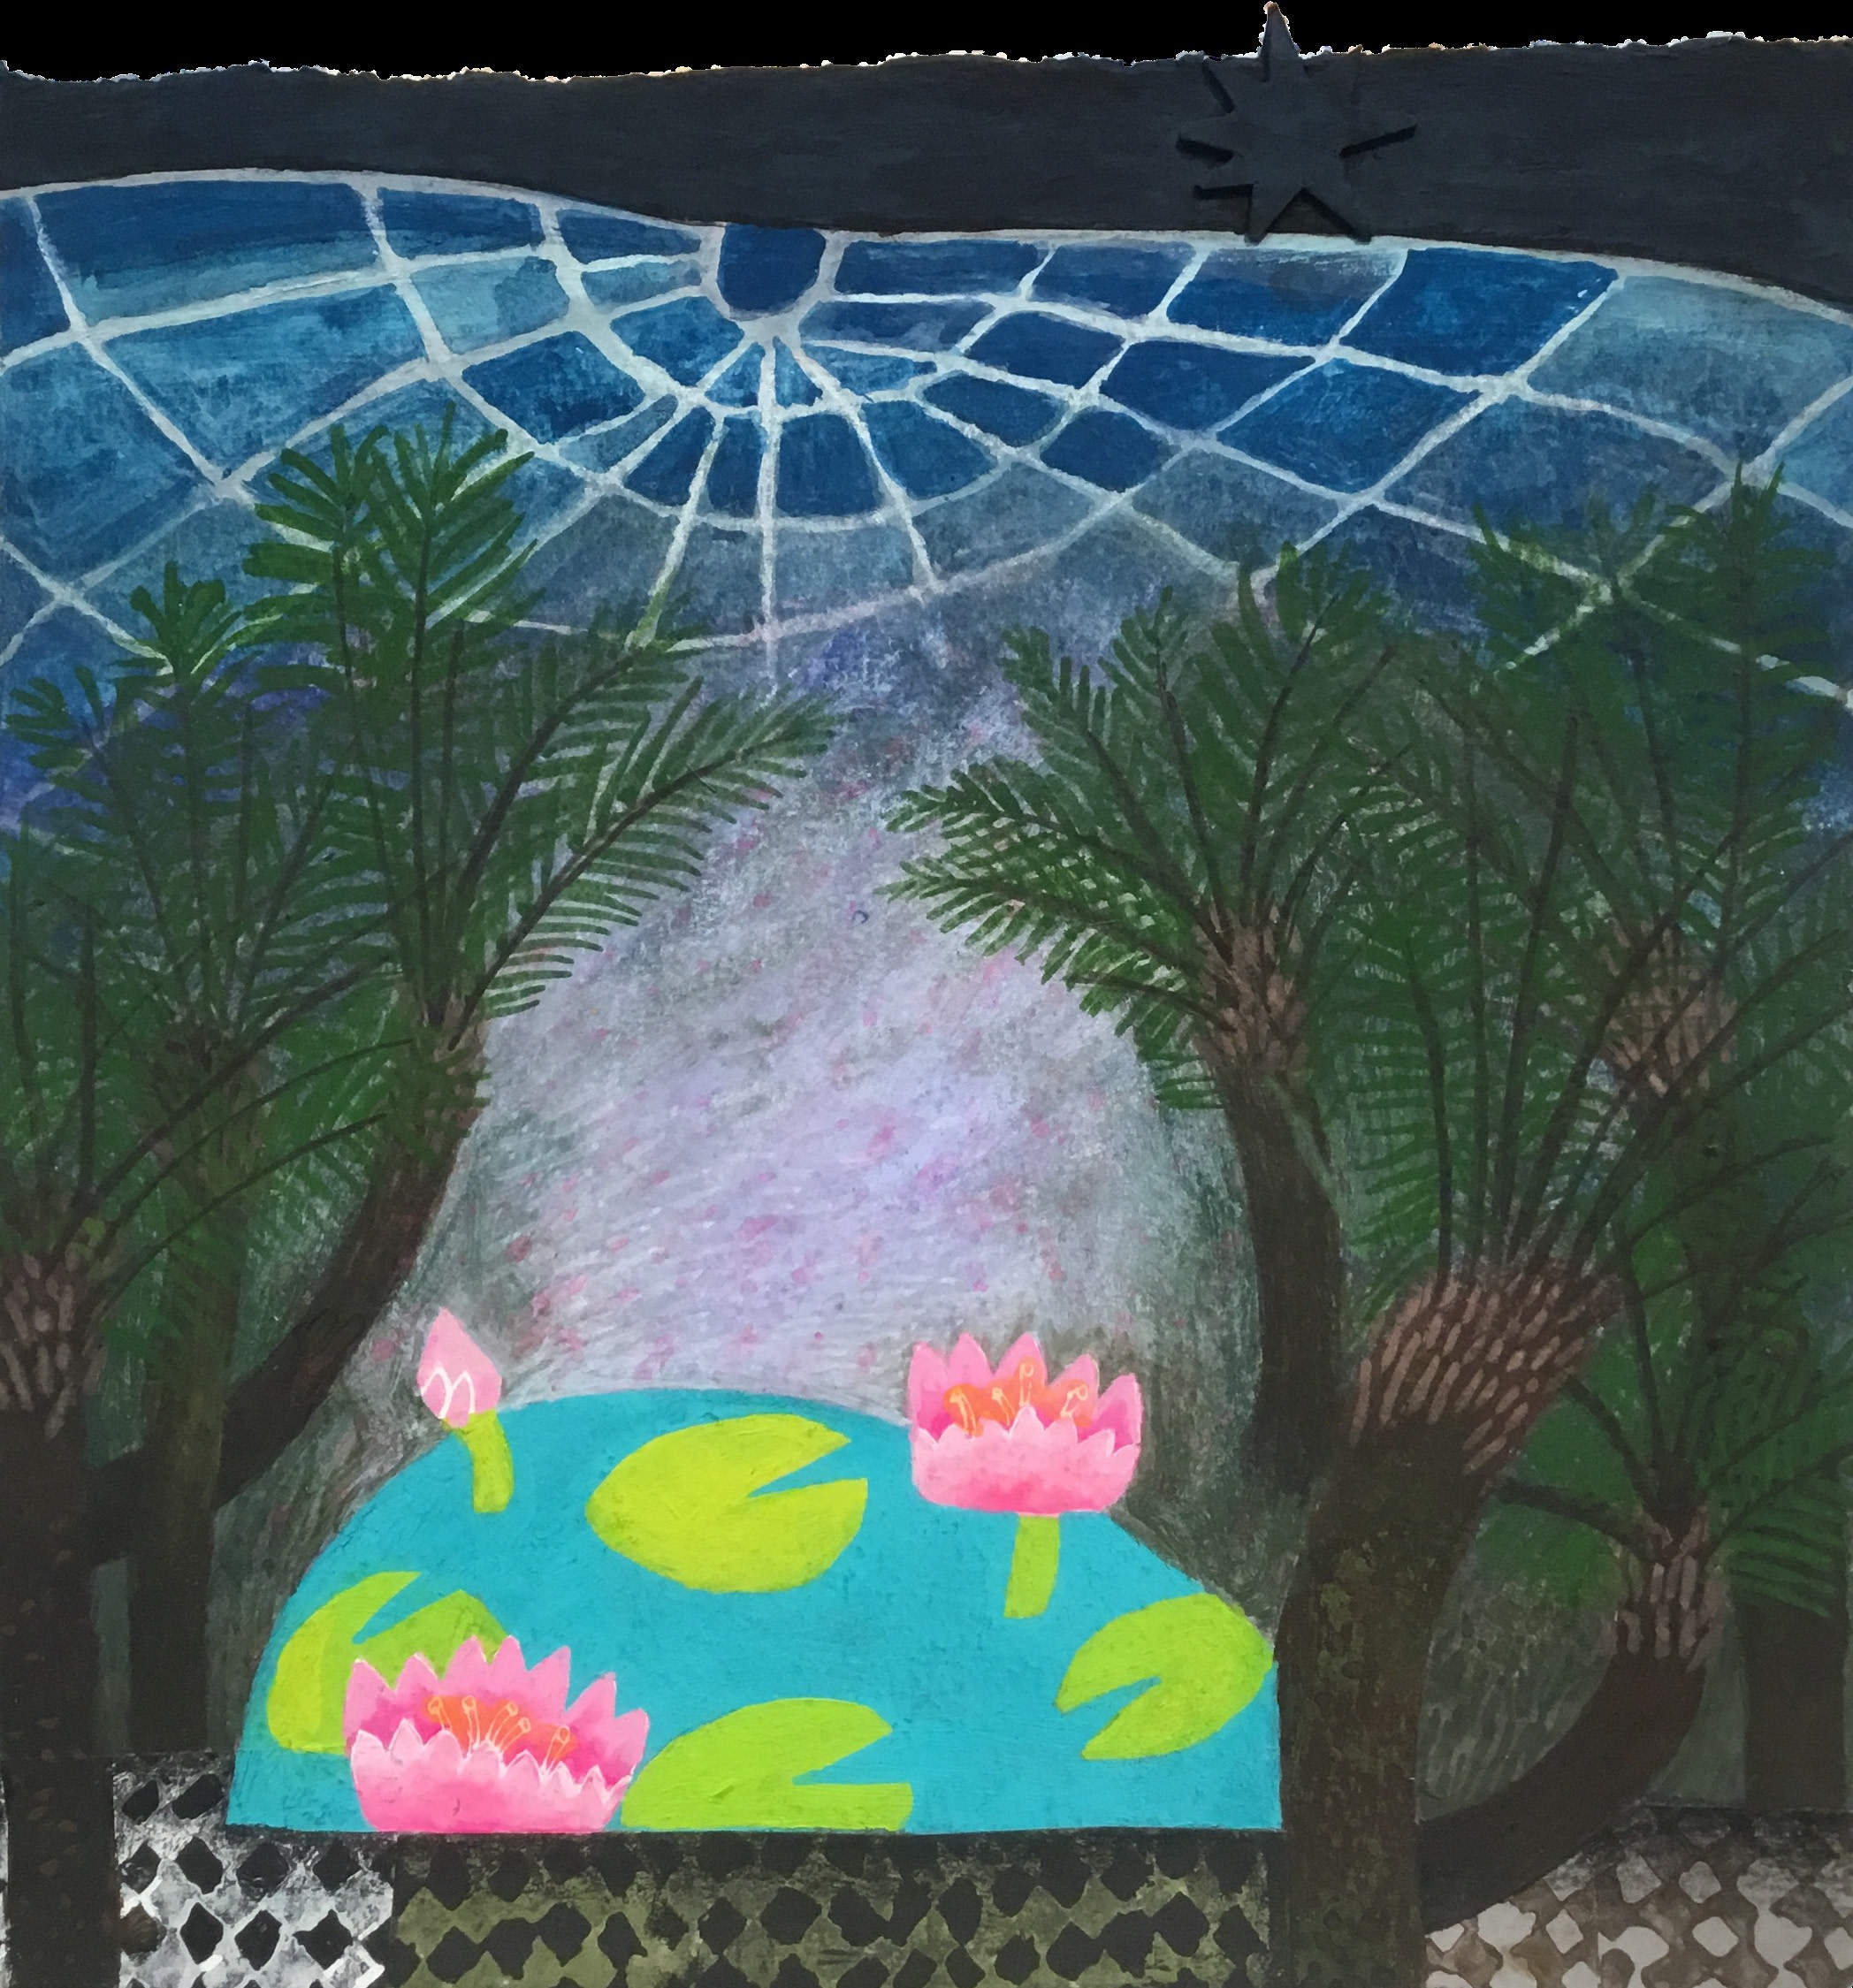 """<span class=""""link fancybox-details-link""""><a href=""""/artists/146-gertie-young/works/11674-gertie-young-tree-ferns-at-night/"""">View Detail Page</a></span><div class=""""artist""""><span class=""""artist""""><strong>Gertie Young</strong></span></div><div class=""""title""""><em>Tree Ferns at Night</em></div><div class=""""medium"""">watercolour, gouache & collage</div><div class=""""dimensions"""">Artwork: 21 x 21 cm<br /> Frame: 32 x 32 cm<br /> <br /> <br /> <br /> </div><div class=""""price"""">£320.00</div>"""